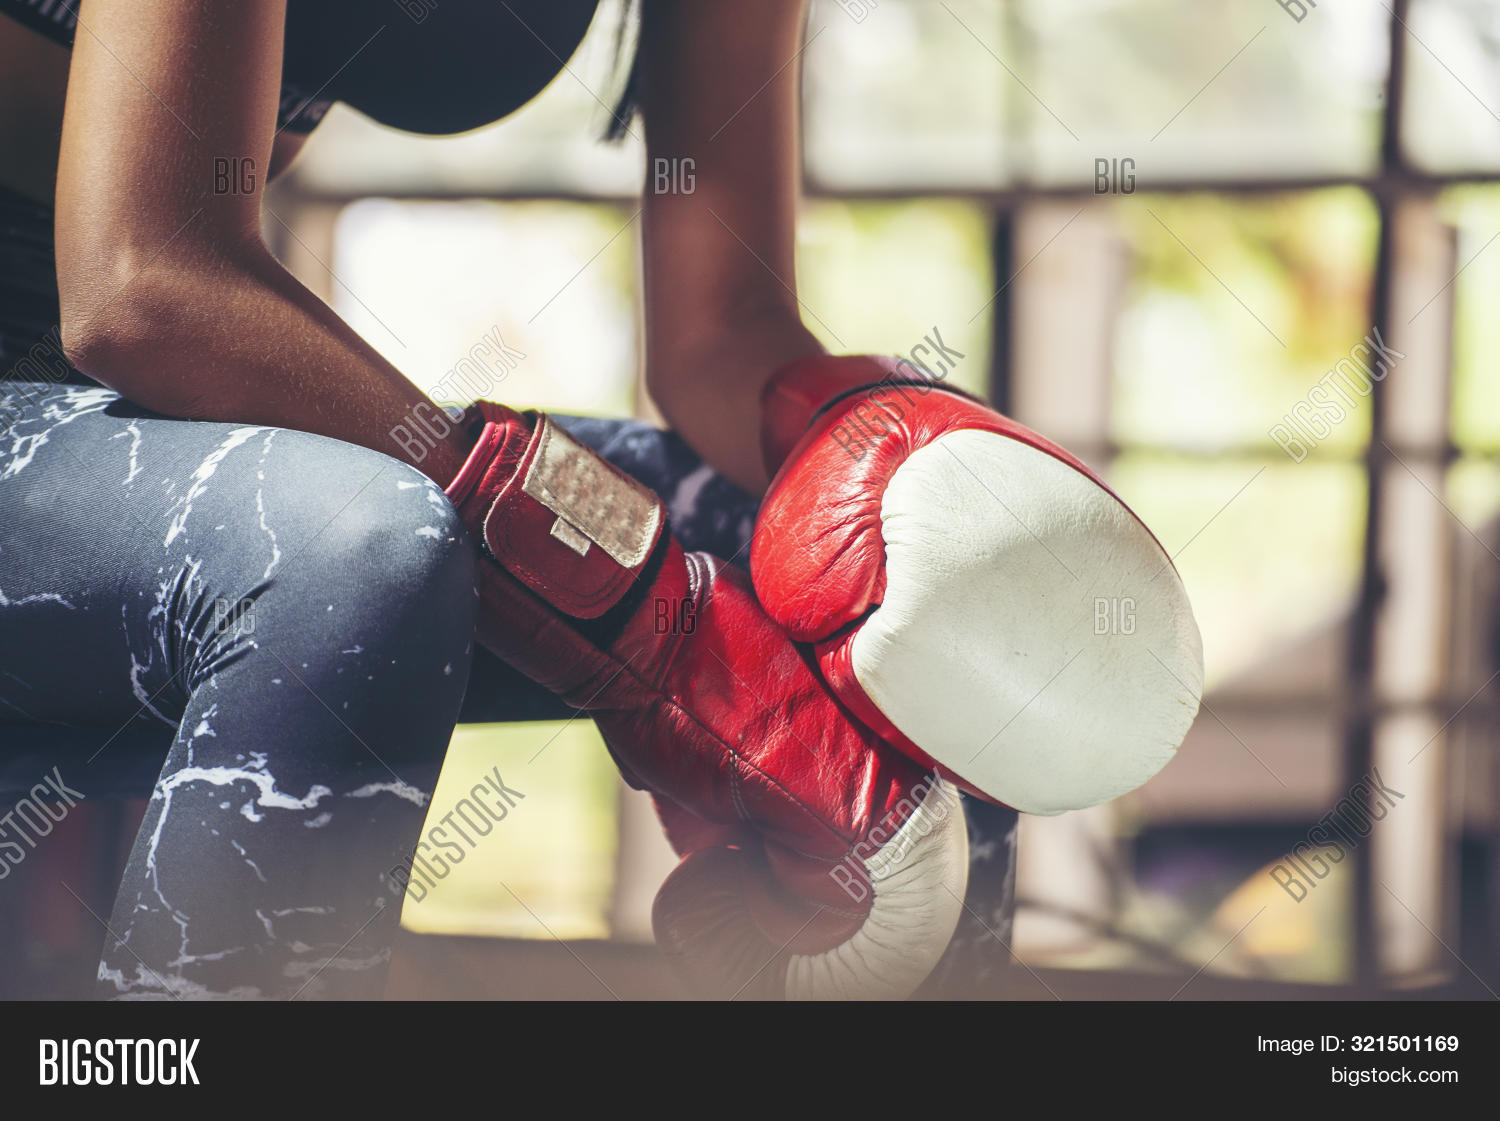 athletic,attractive,background,beautiful,body,boxer,boxing,cardio,club,competitive,concept,defense,exercise,female,fighter,fighting,fit,fitness,girl,gym,hard,healthy,kick,kickboxing,lifestyle,mma,model,muay,muscle,muscular,people,person,portrait,power,prepare,punching,session,sport,sportswear,strap,strength,strengthen,strong,thai,training,woman,workout,yellow,young